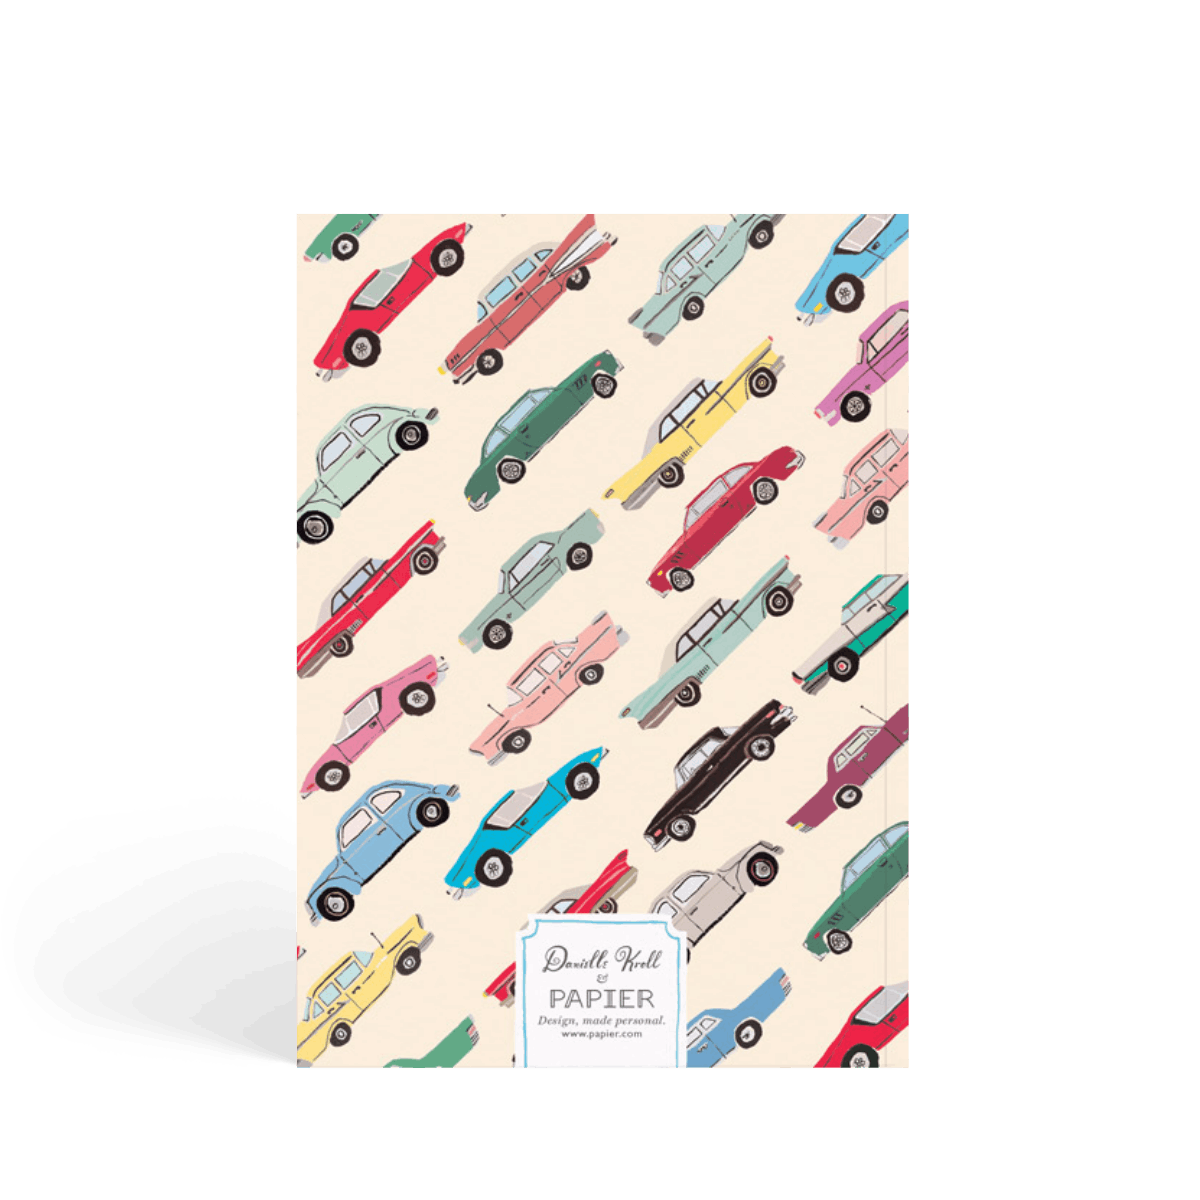 Https%3a%2f%2fwww.papier.com%2fproduct image%2f55833%2f5%2fvintage cars 13409 back 1542299852.png?ixlib=rb 1.1